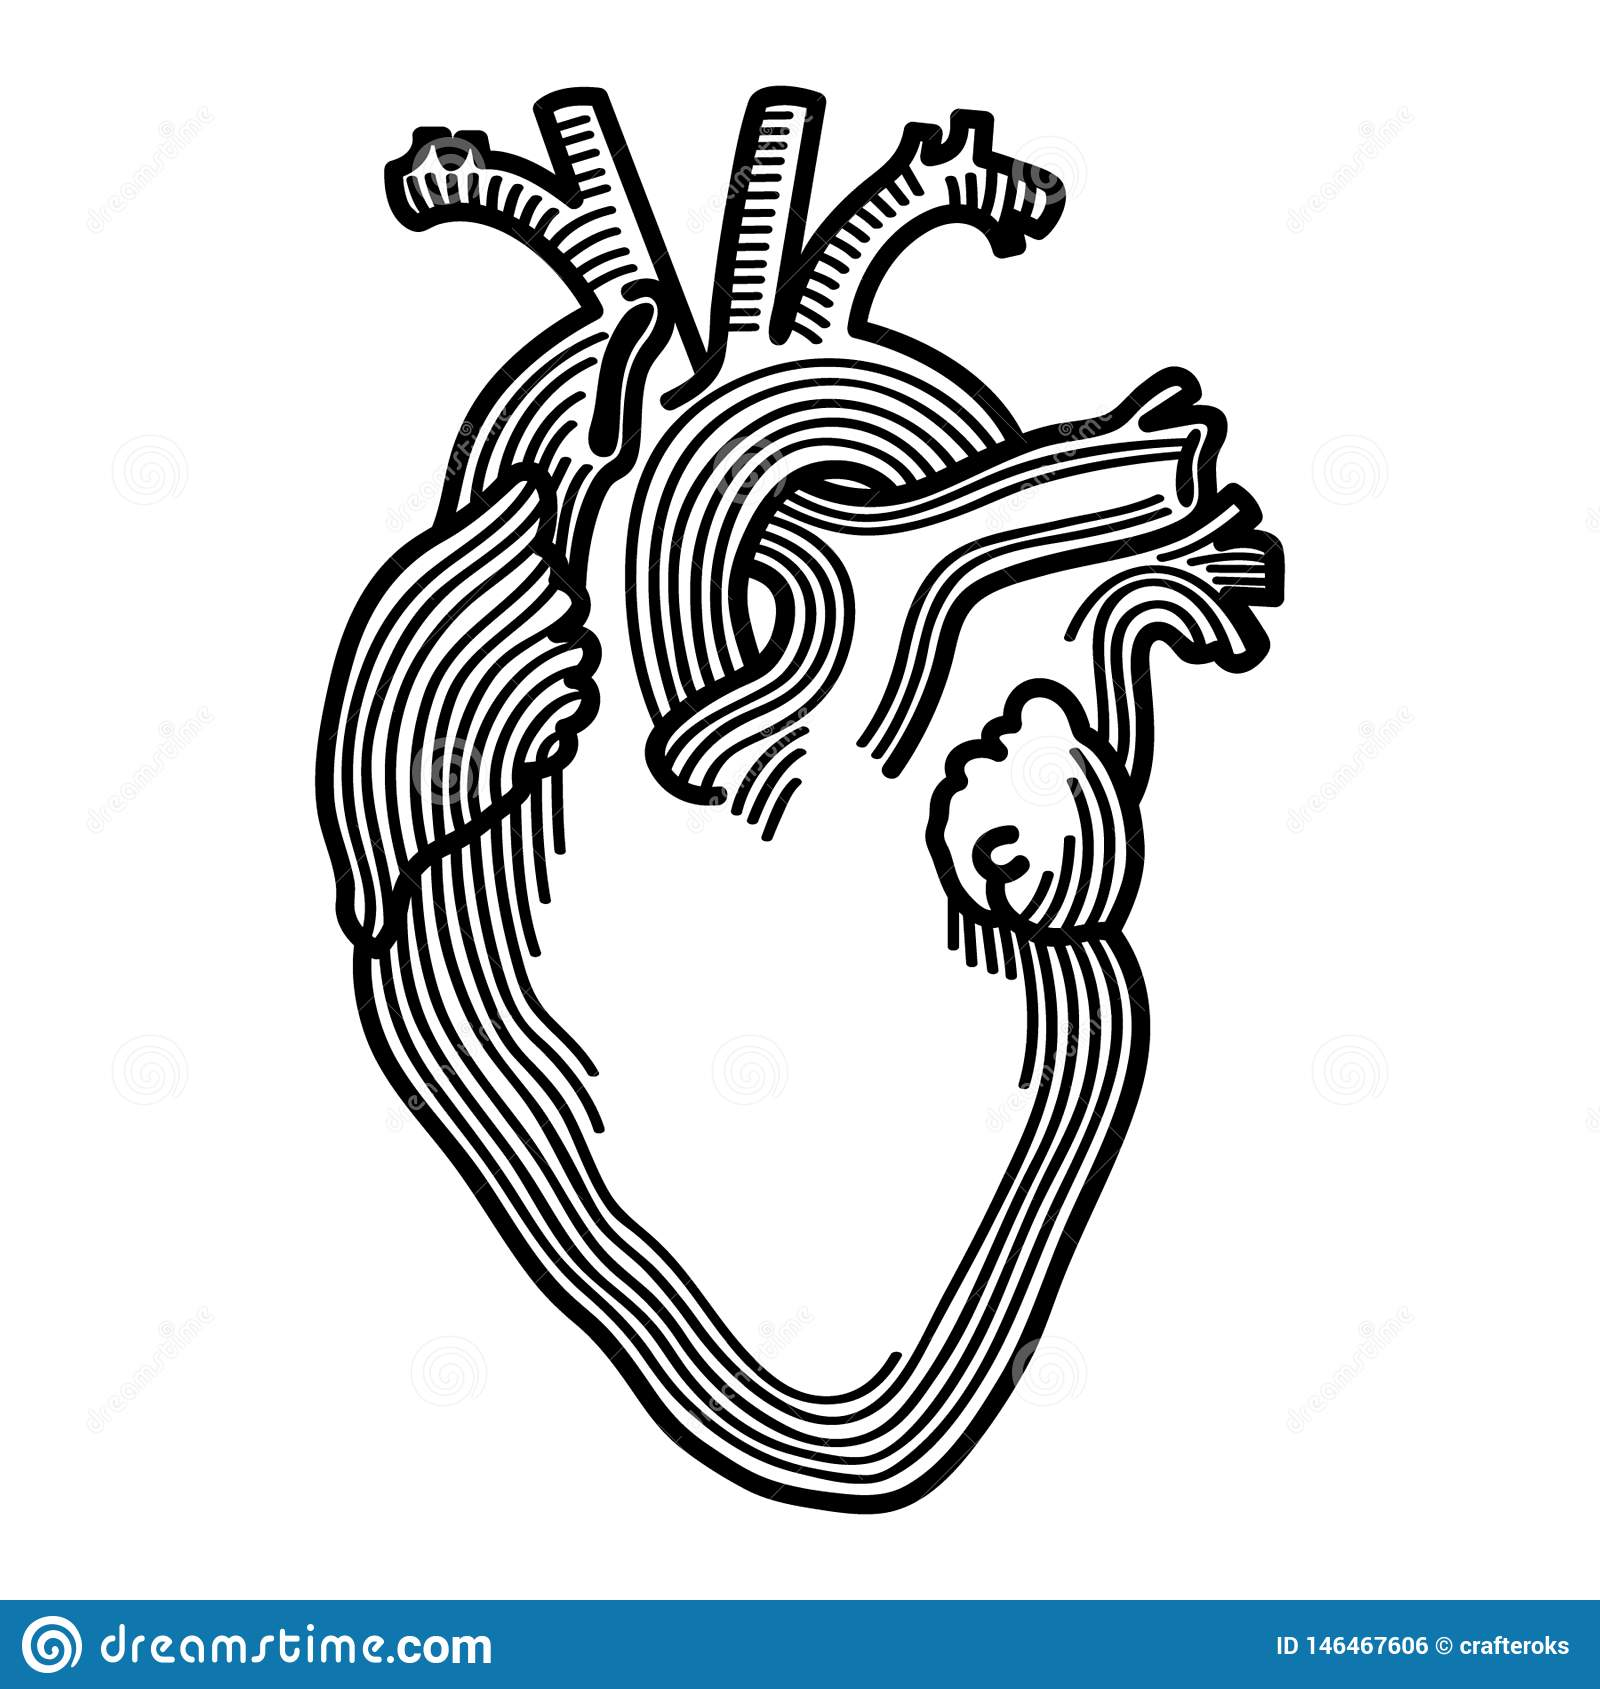 Anatomical Heart Hand Drawn Crafteroks Svg Free Free Svg File Eps Dxf Vector Logo Silhouette Icon Instant Download Digita Stock Vector Illustration Of Download Crafteroks 146467606